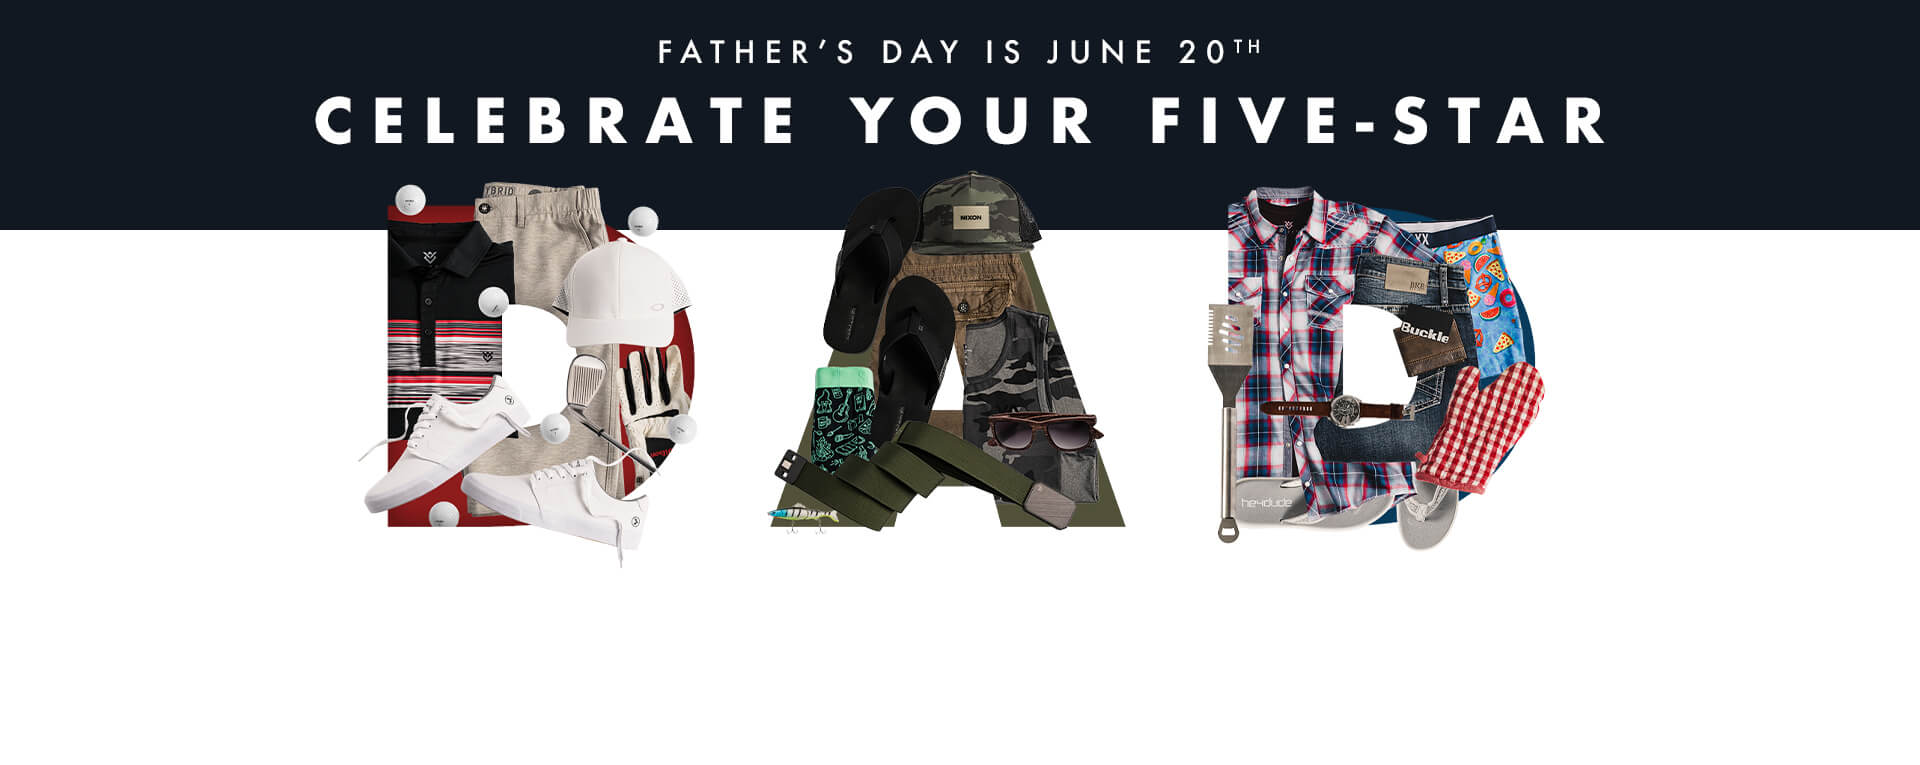 Father's Day is June 20th - Celebrate Your Five-Star - A collage of men's clothing and shoes forming the word Dad